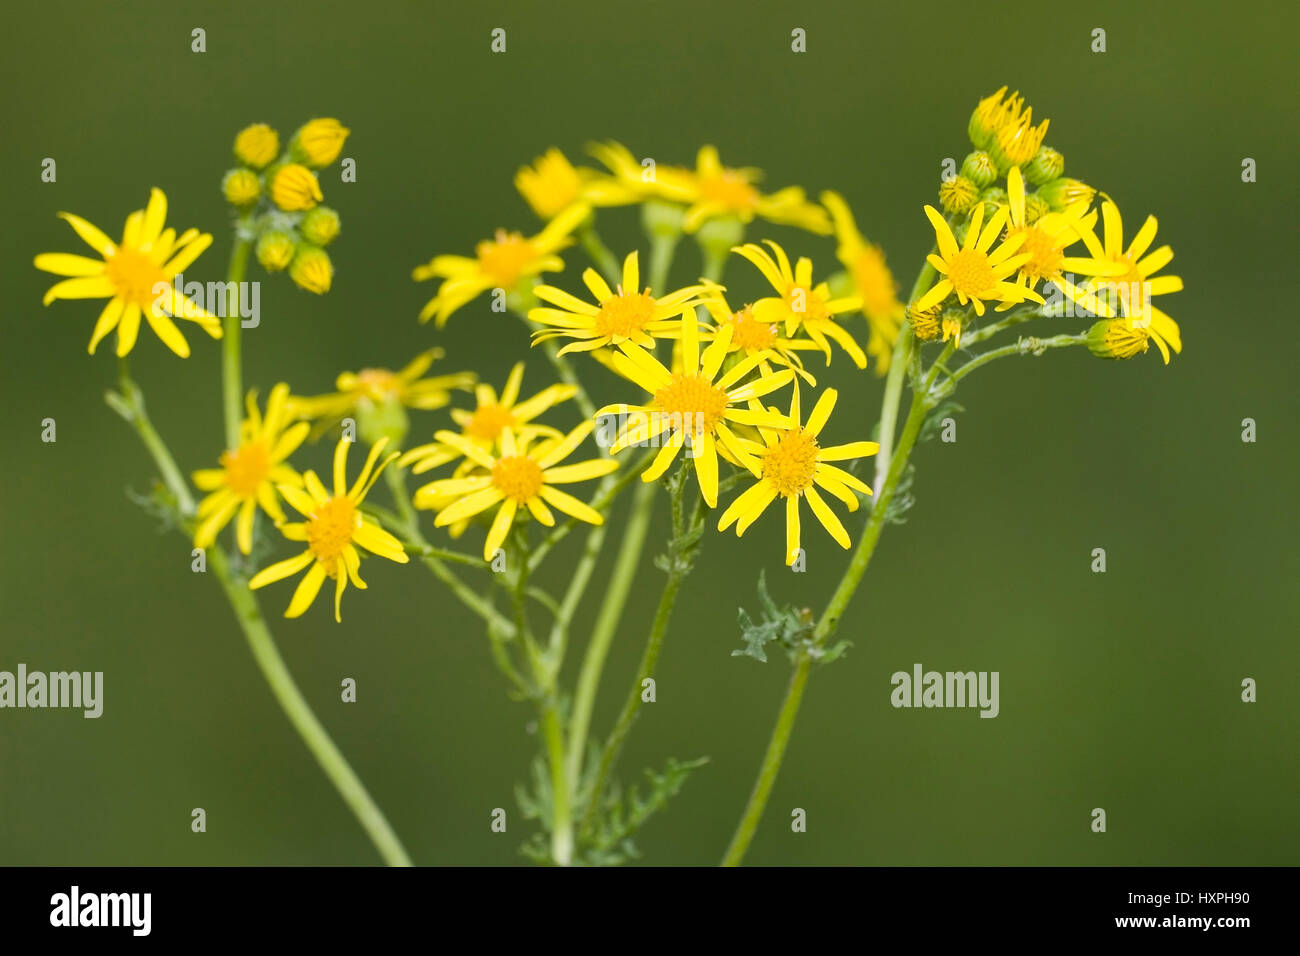 Jakob's cross herb, Jakob's old man's herb, Senecio jacobaea, toxic, plant type old man's herbs - Stock Image